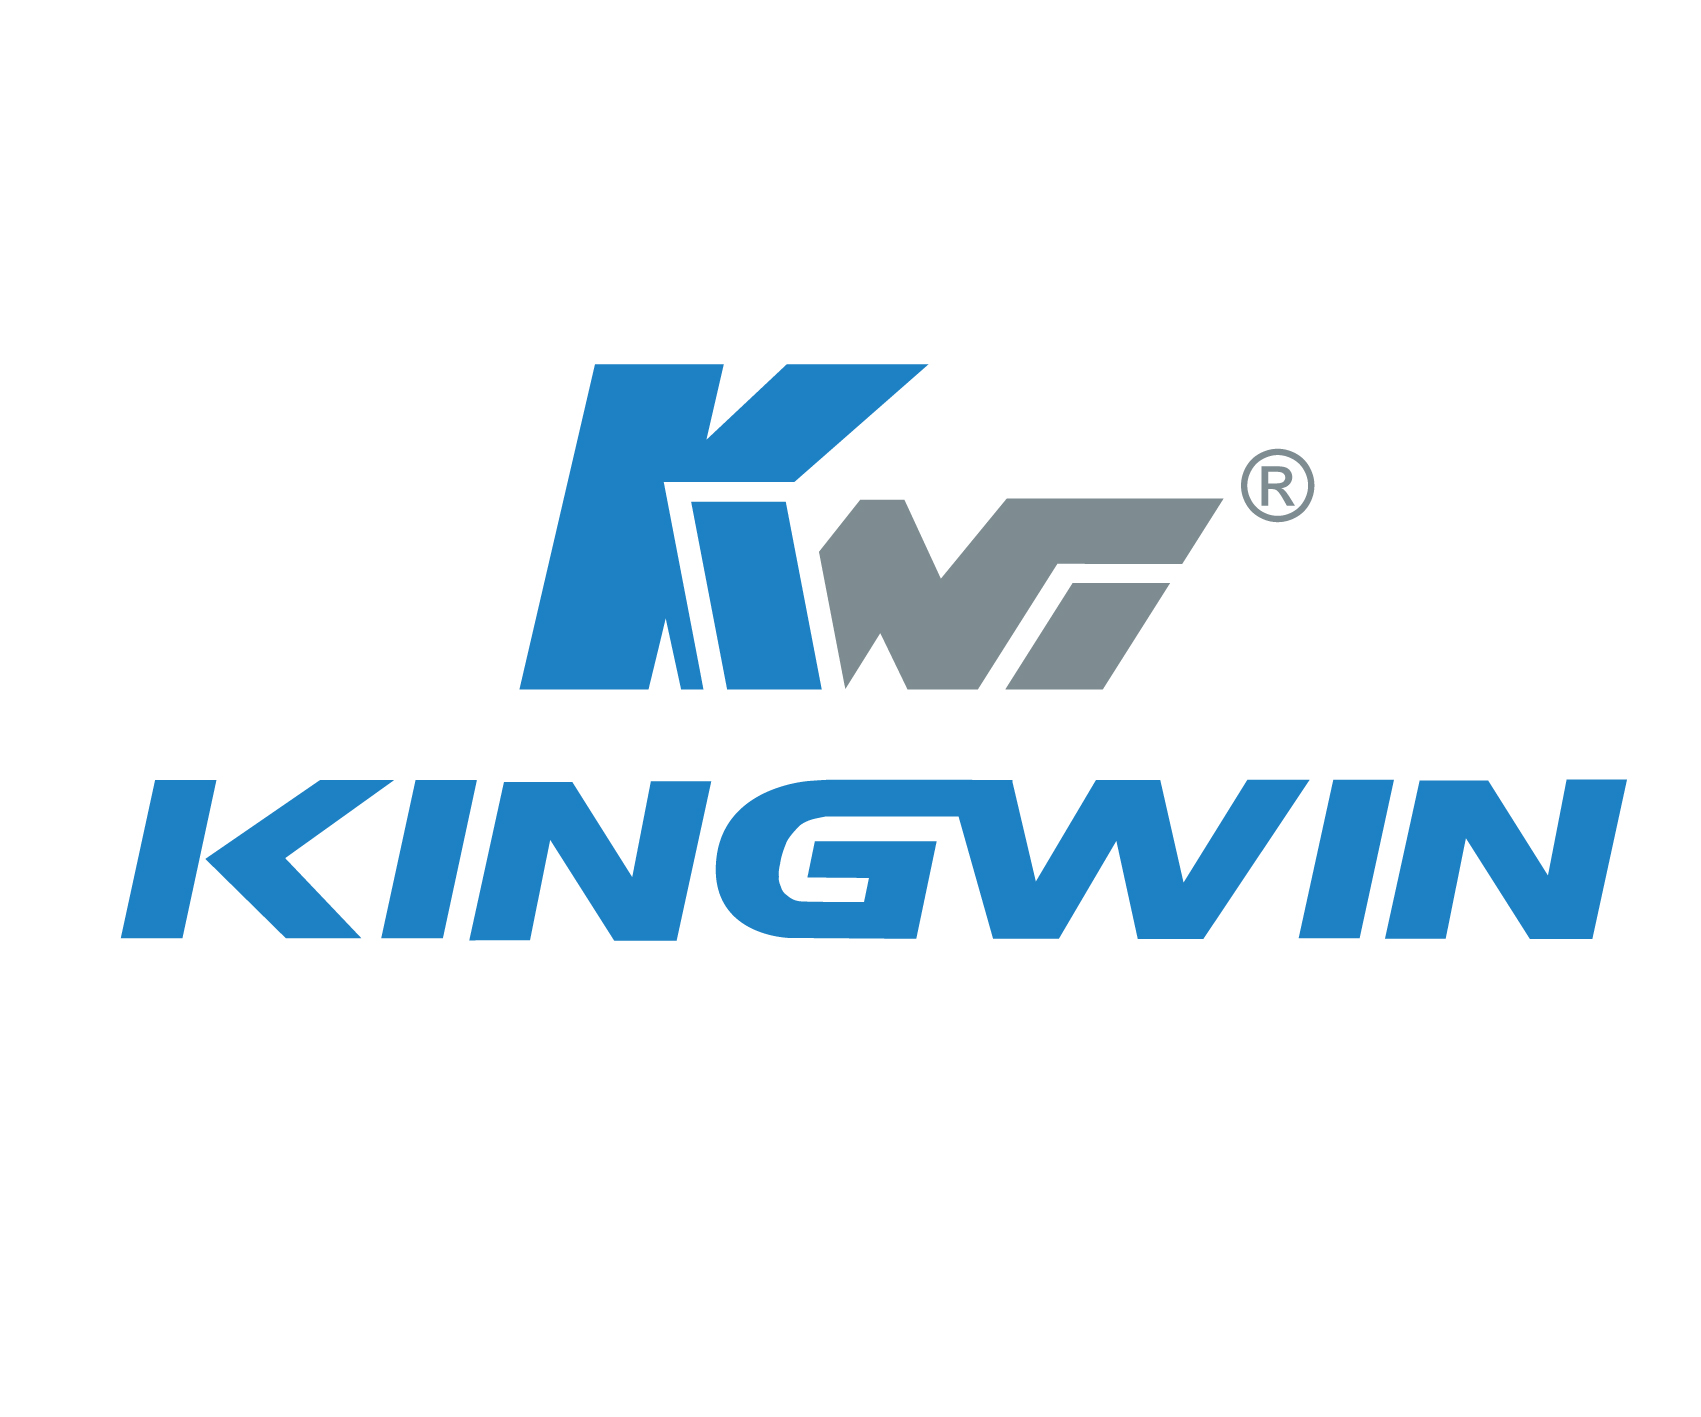 Kingwin Computer Electronics Accessories Manufacturer Kingwin salon equipment co., ltd., experts in manufacturing and exporting salon products and 1496 more products. www kingwin com